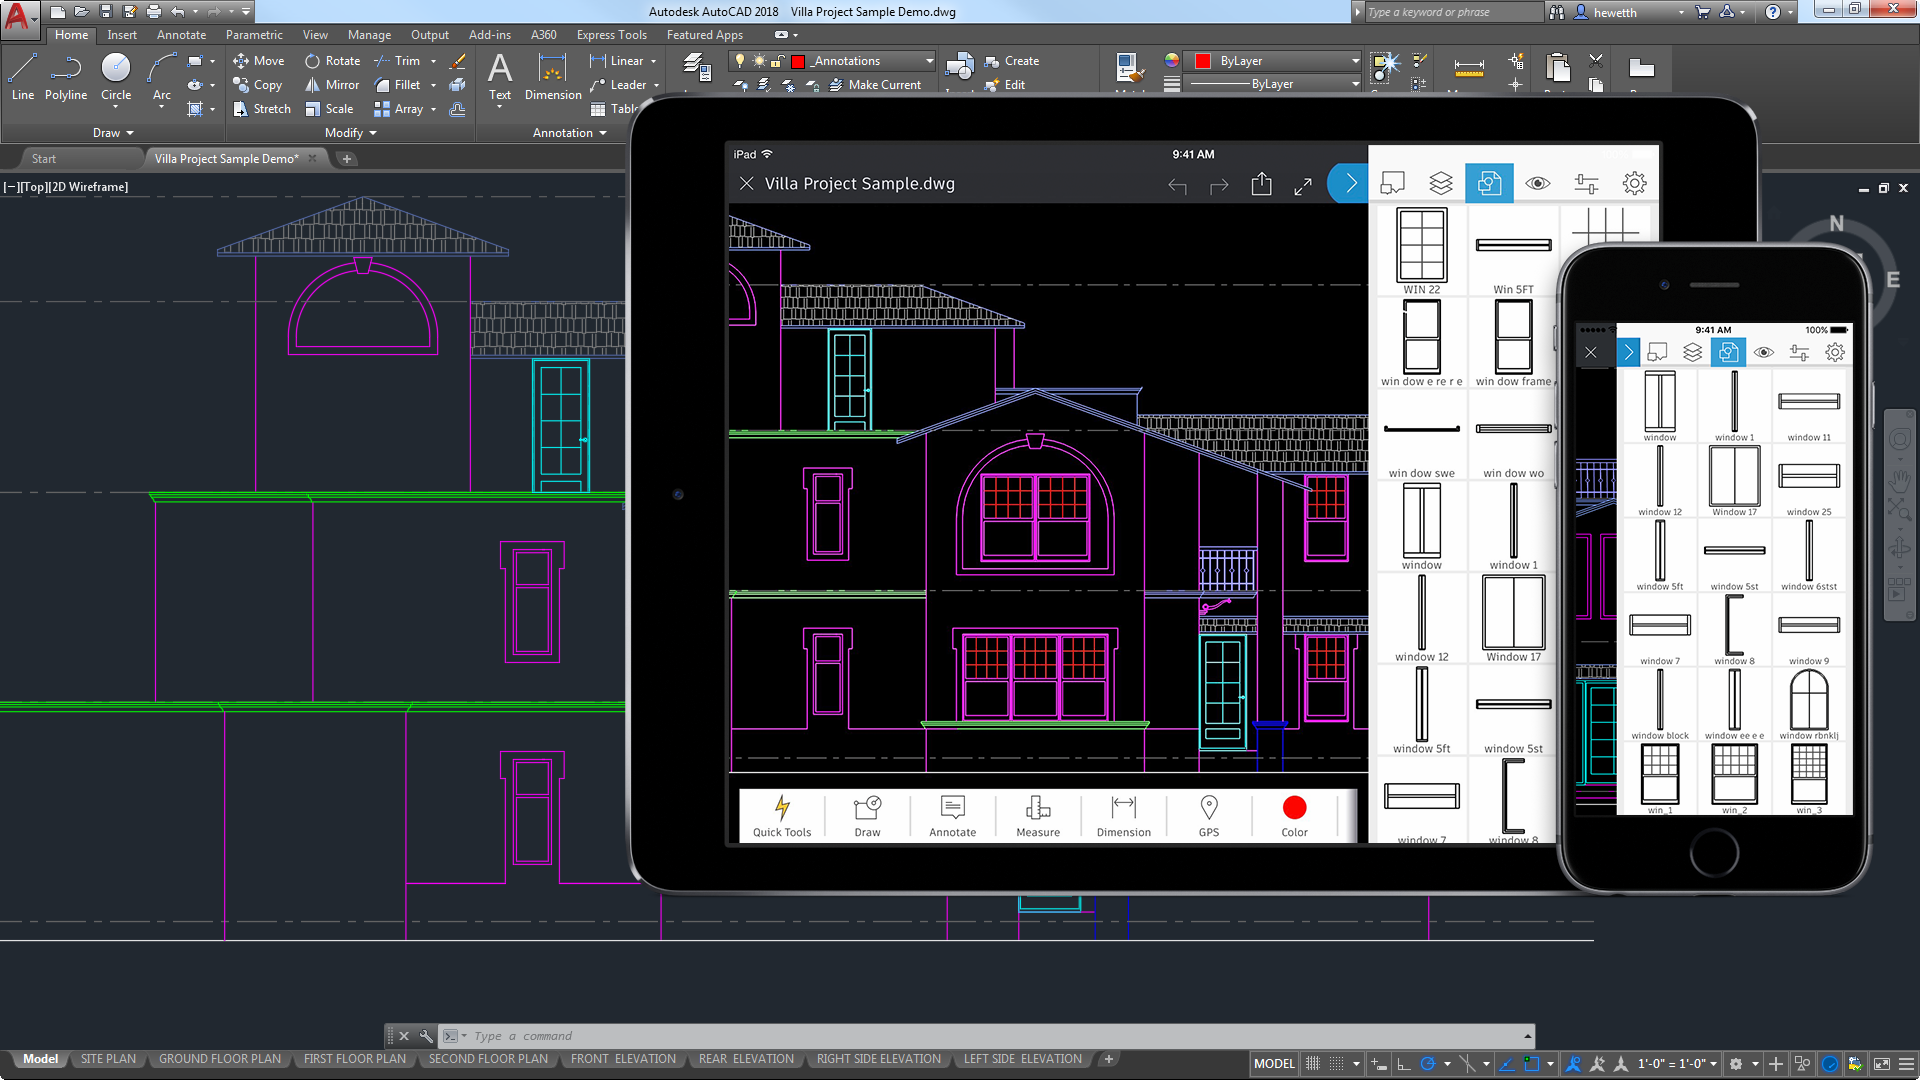 Front Elevation Of G 3 Building : Autocad for mac und windows cad software autodesk